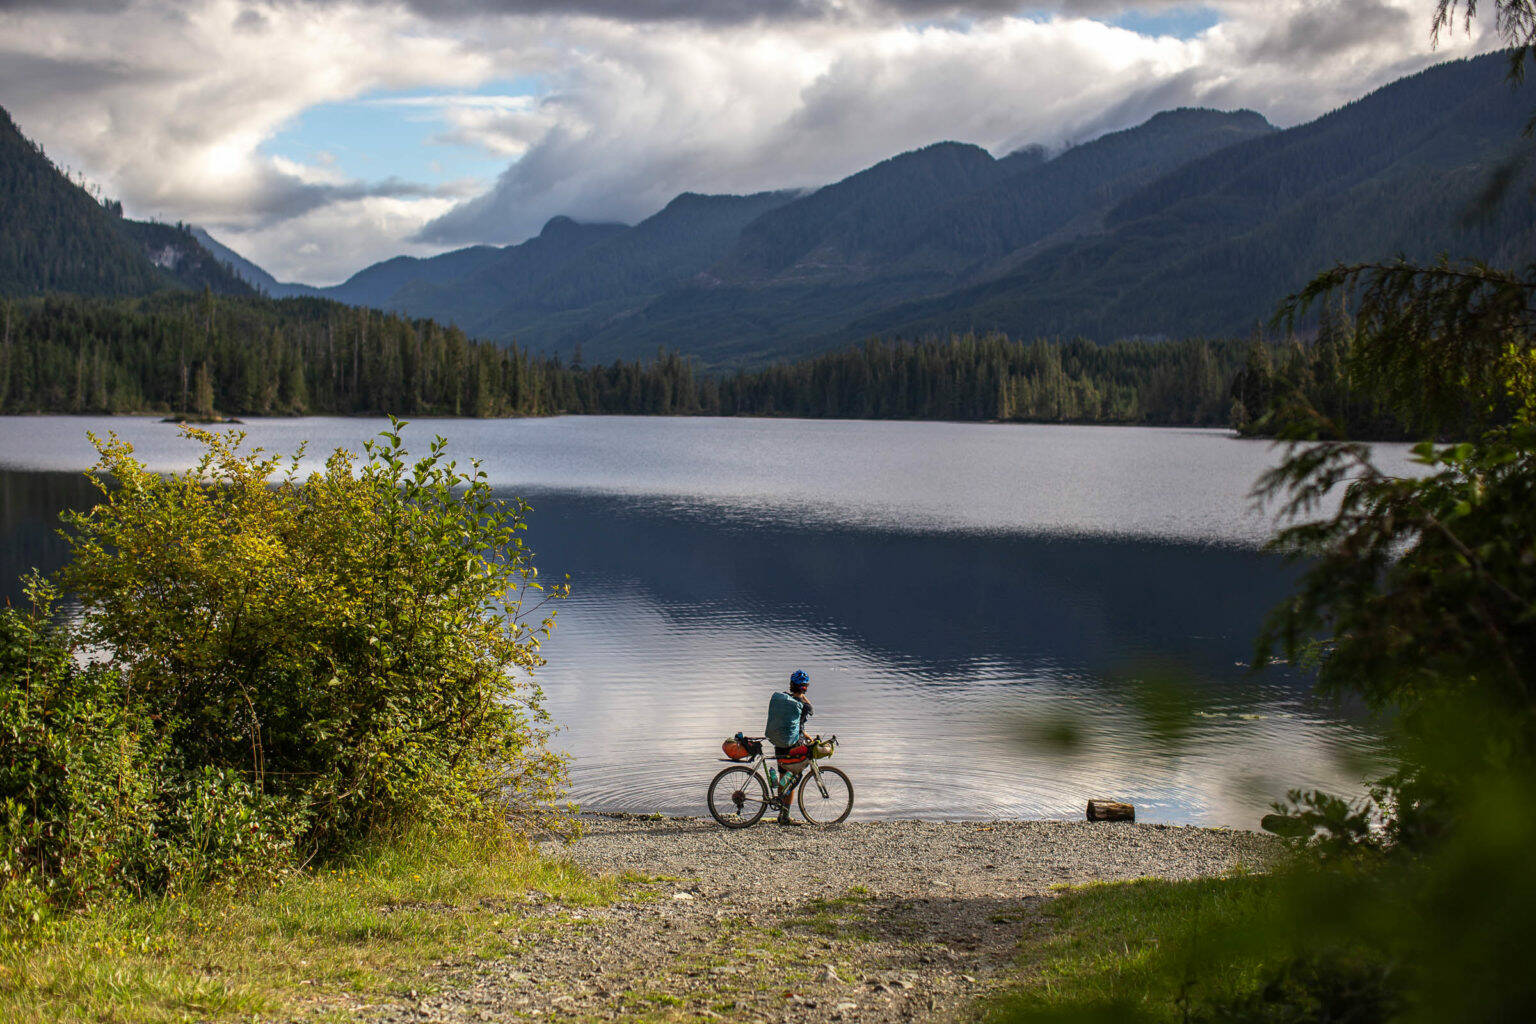 Bikepacking can get people out to some hard-to-find locations. Photo courtesy Miles Arbor